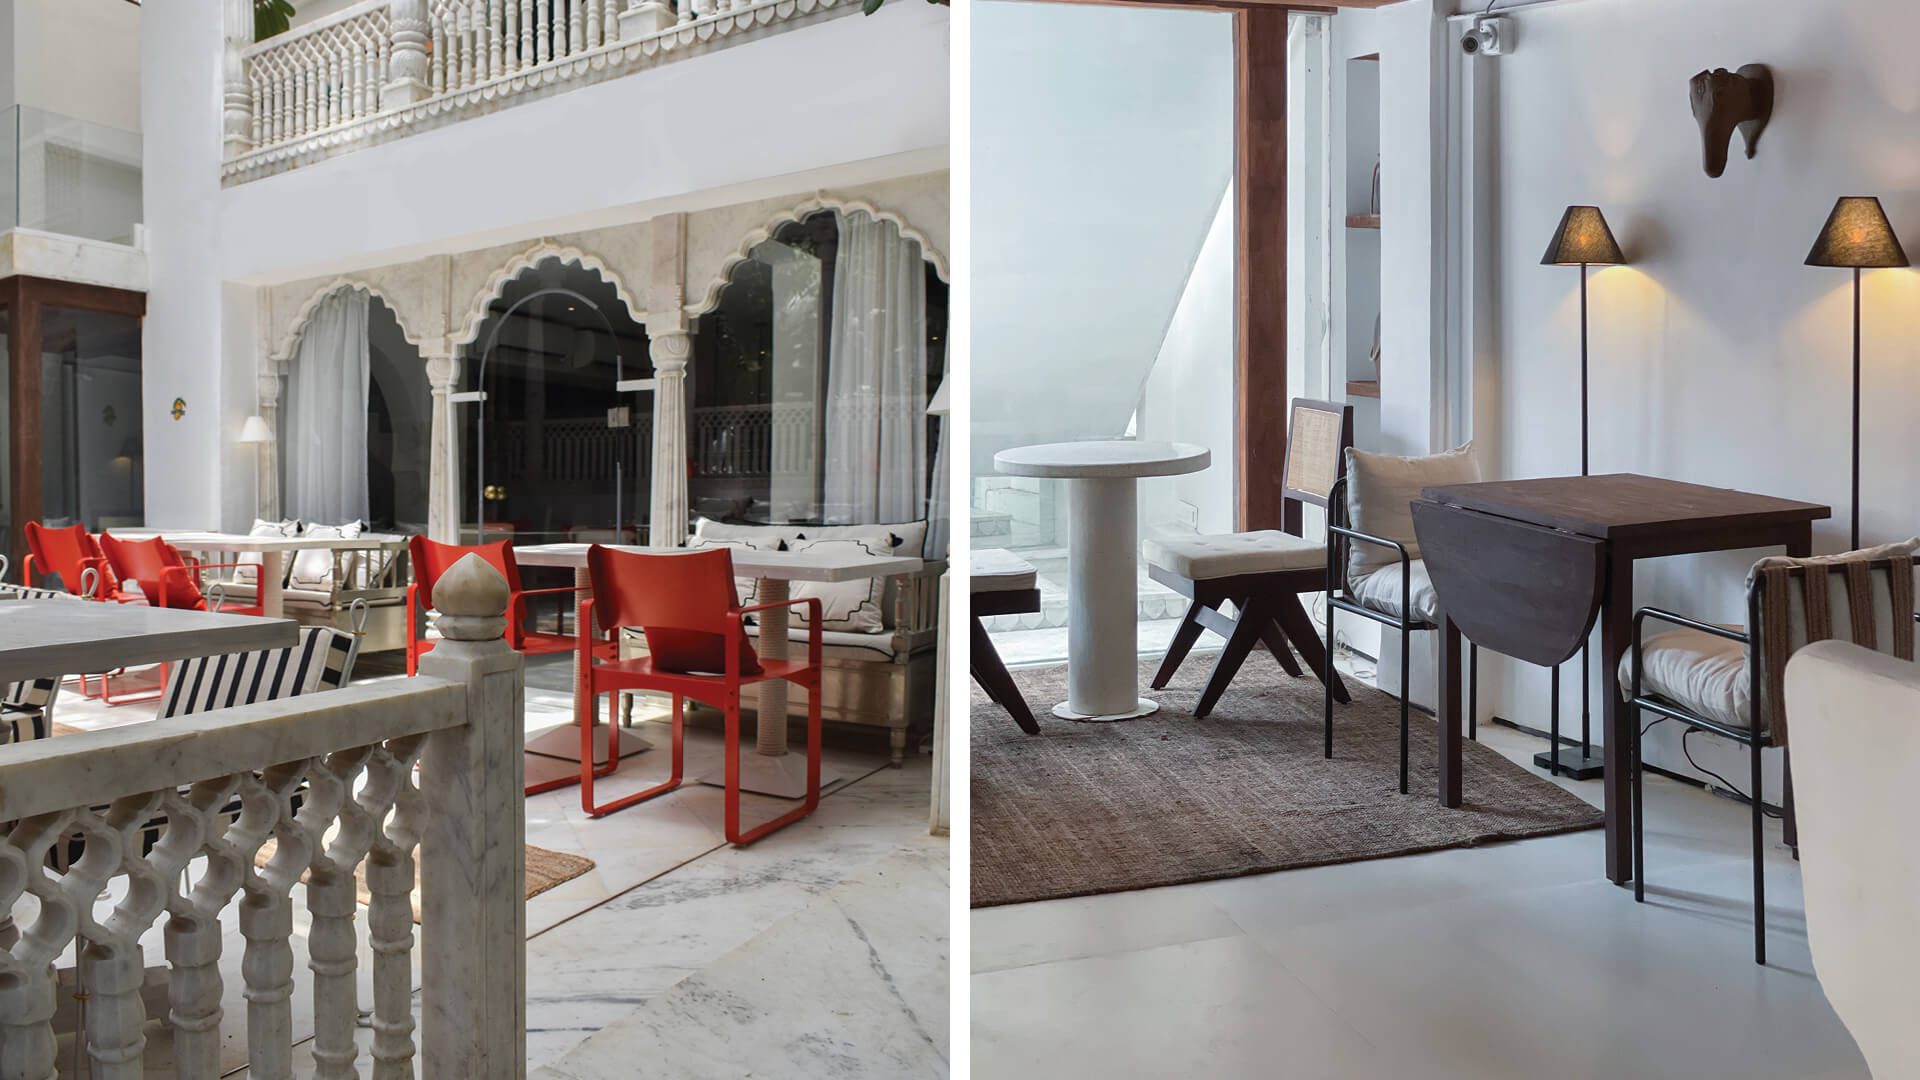 Marble interior and warmth coexist in Joshi House, a restaurant by Ashiesh Shah